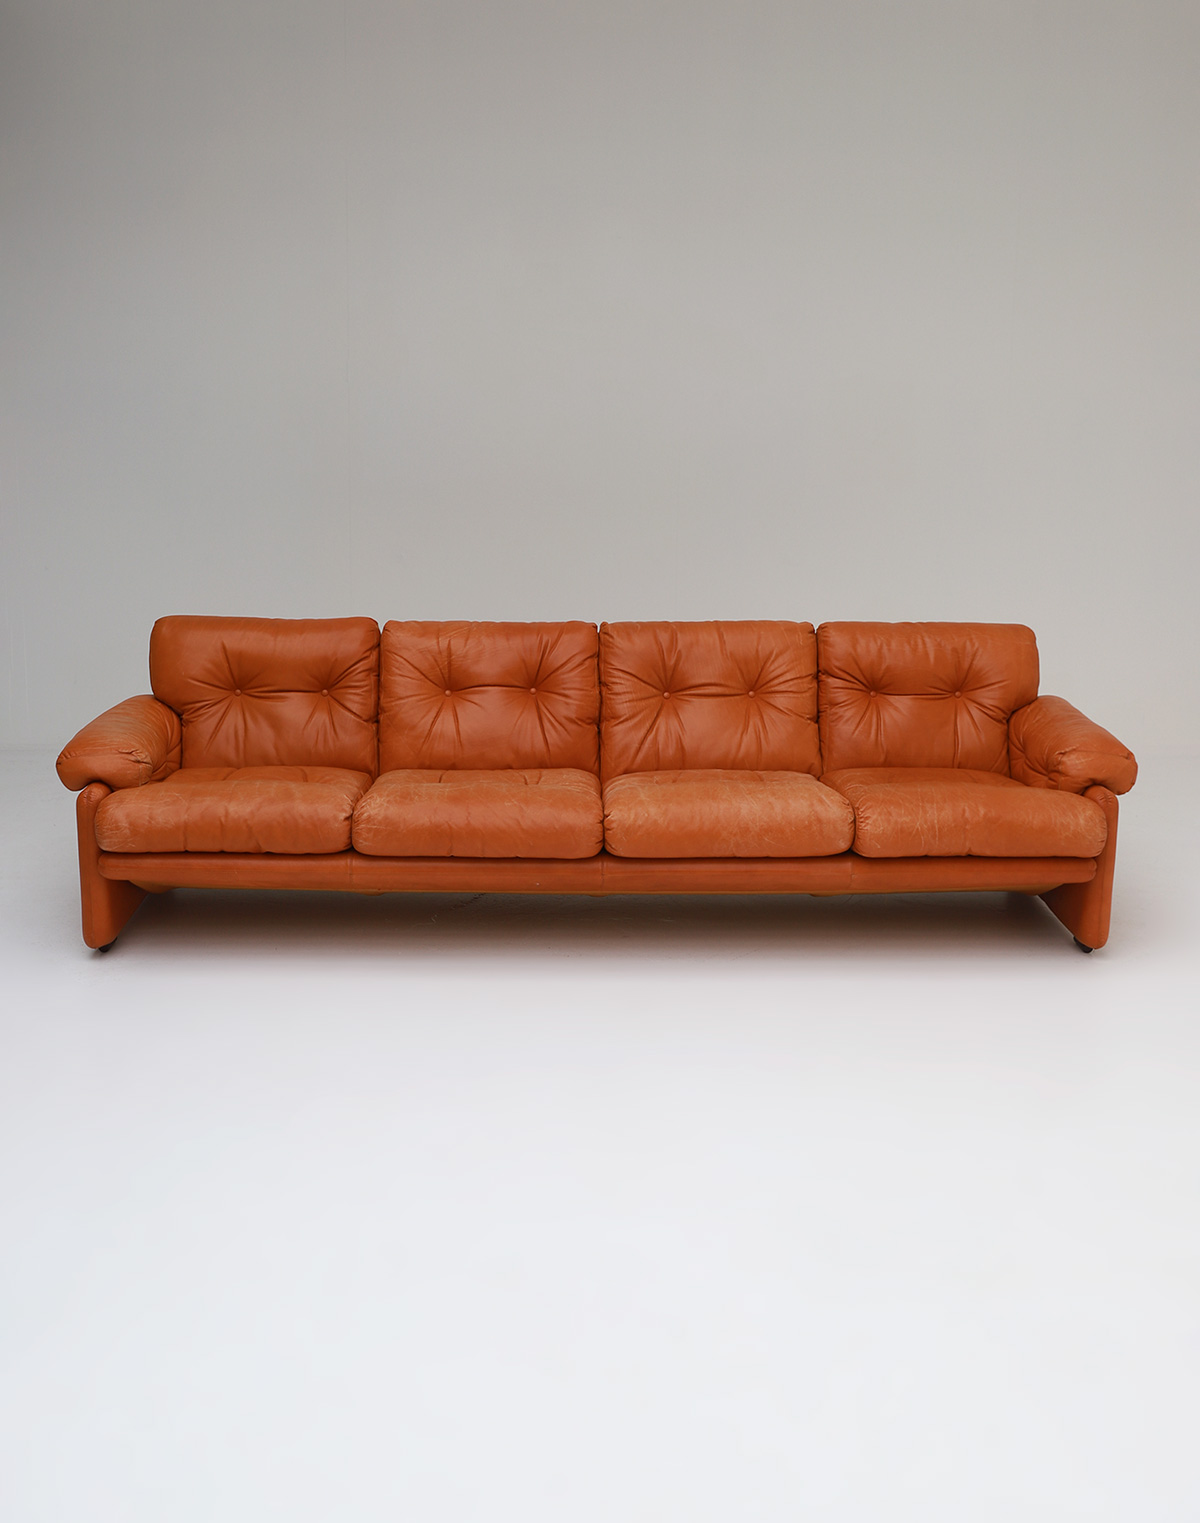 Tobia Scarpa 4 seat Cognac Leather Sofa B&B Italiaimage 2